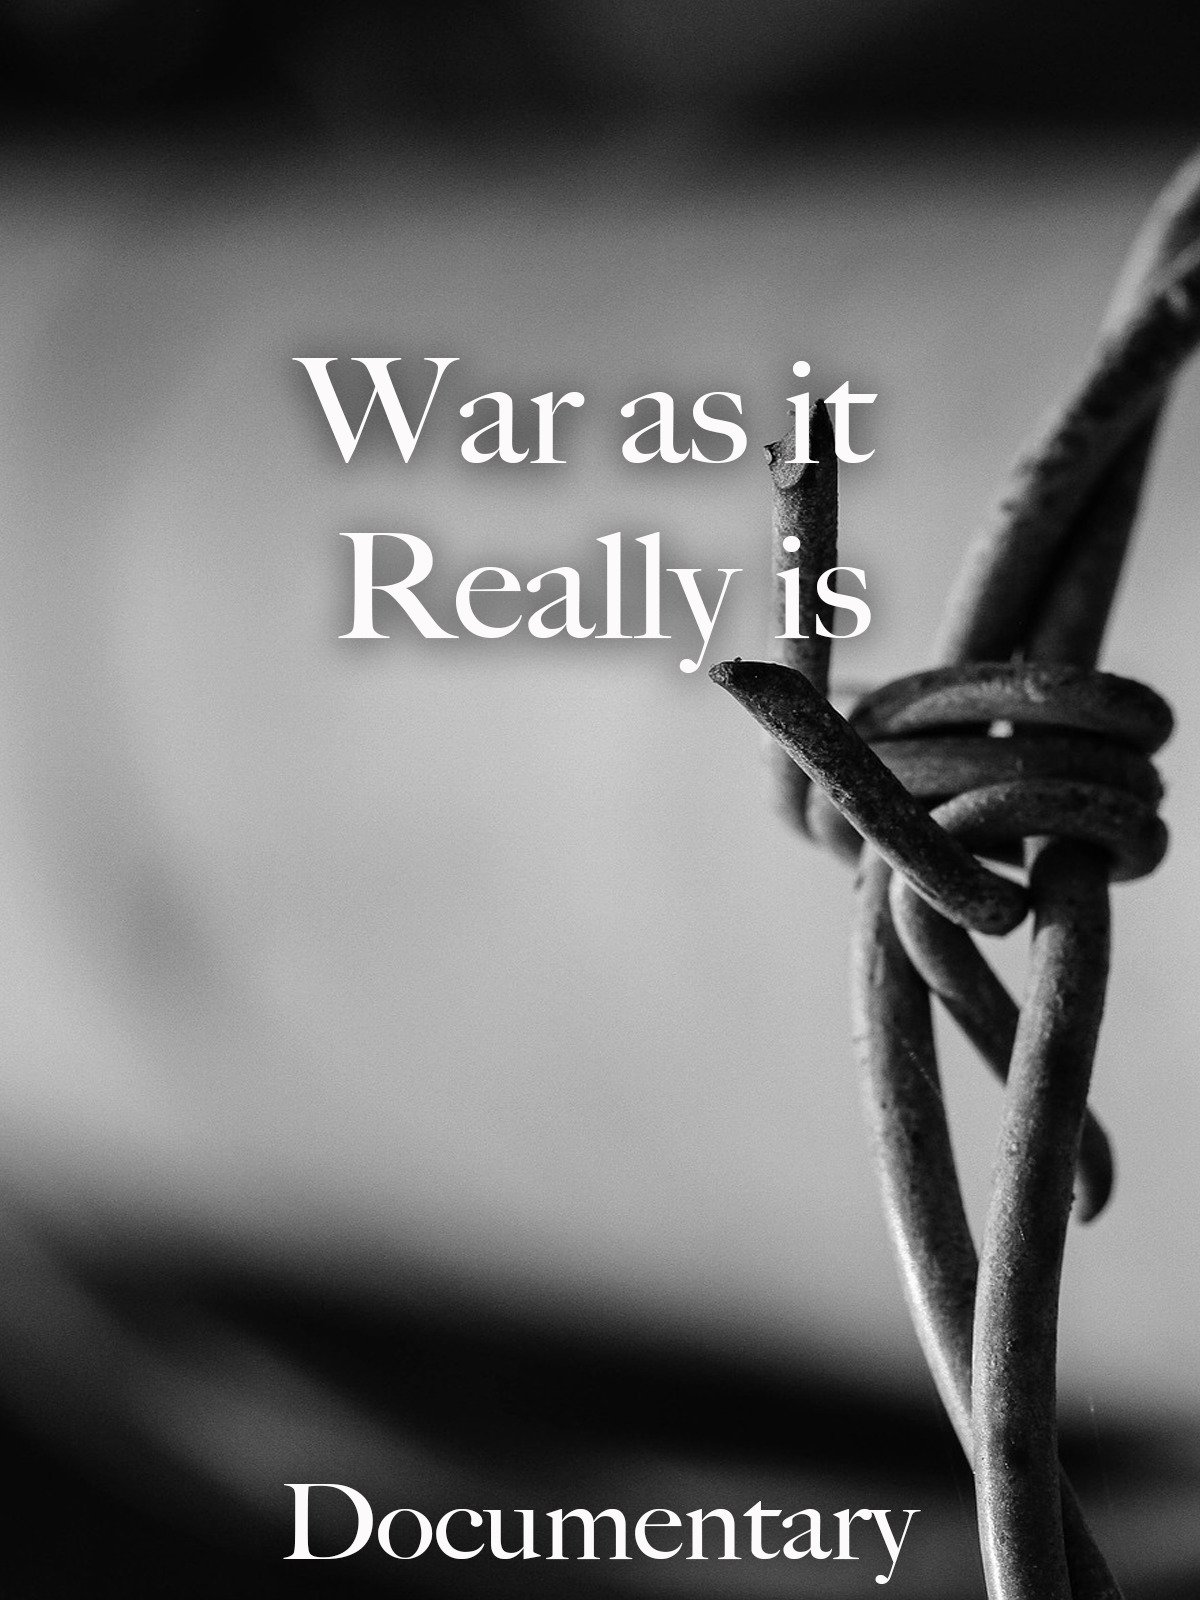 War as it Really is Documentary